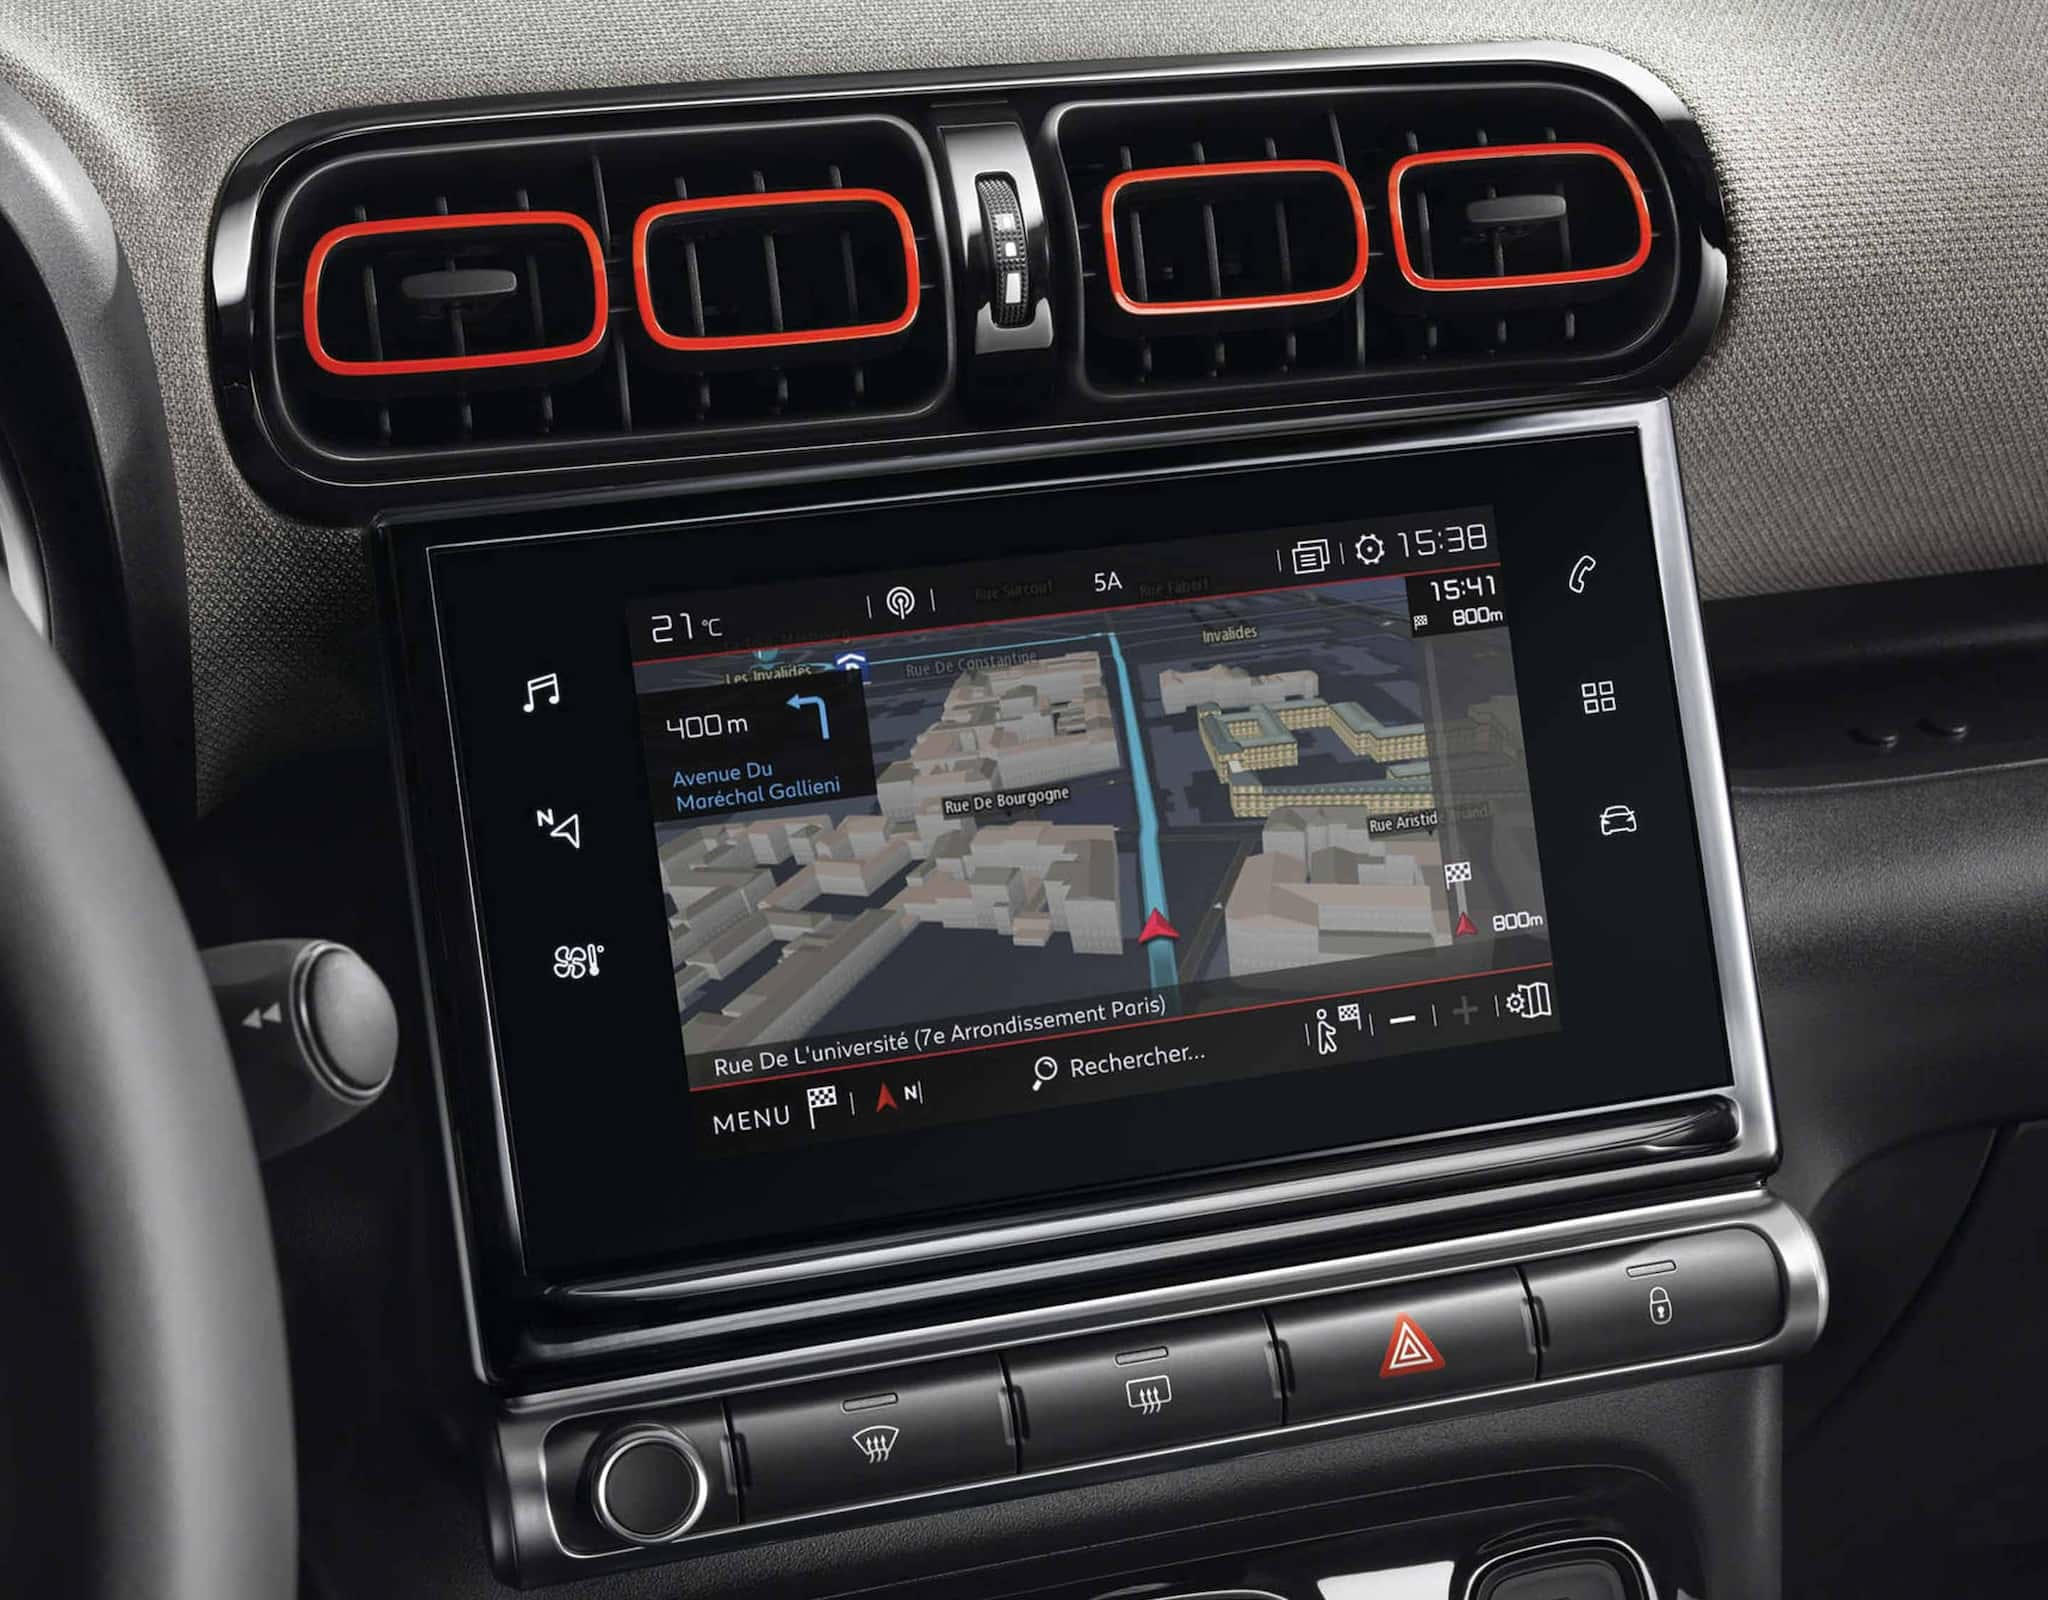 THE INTUITIVE CITROËN CONNECT NAV